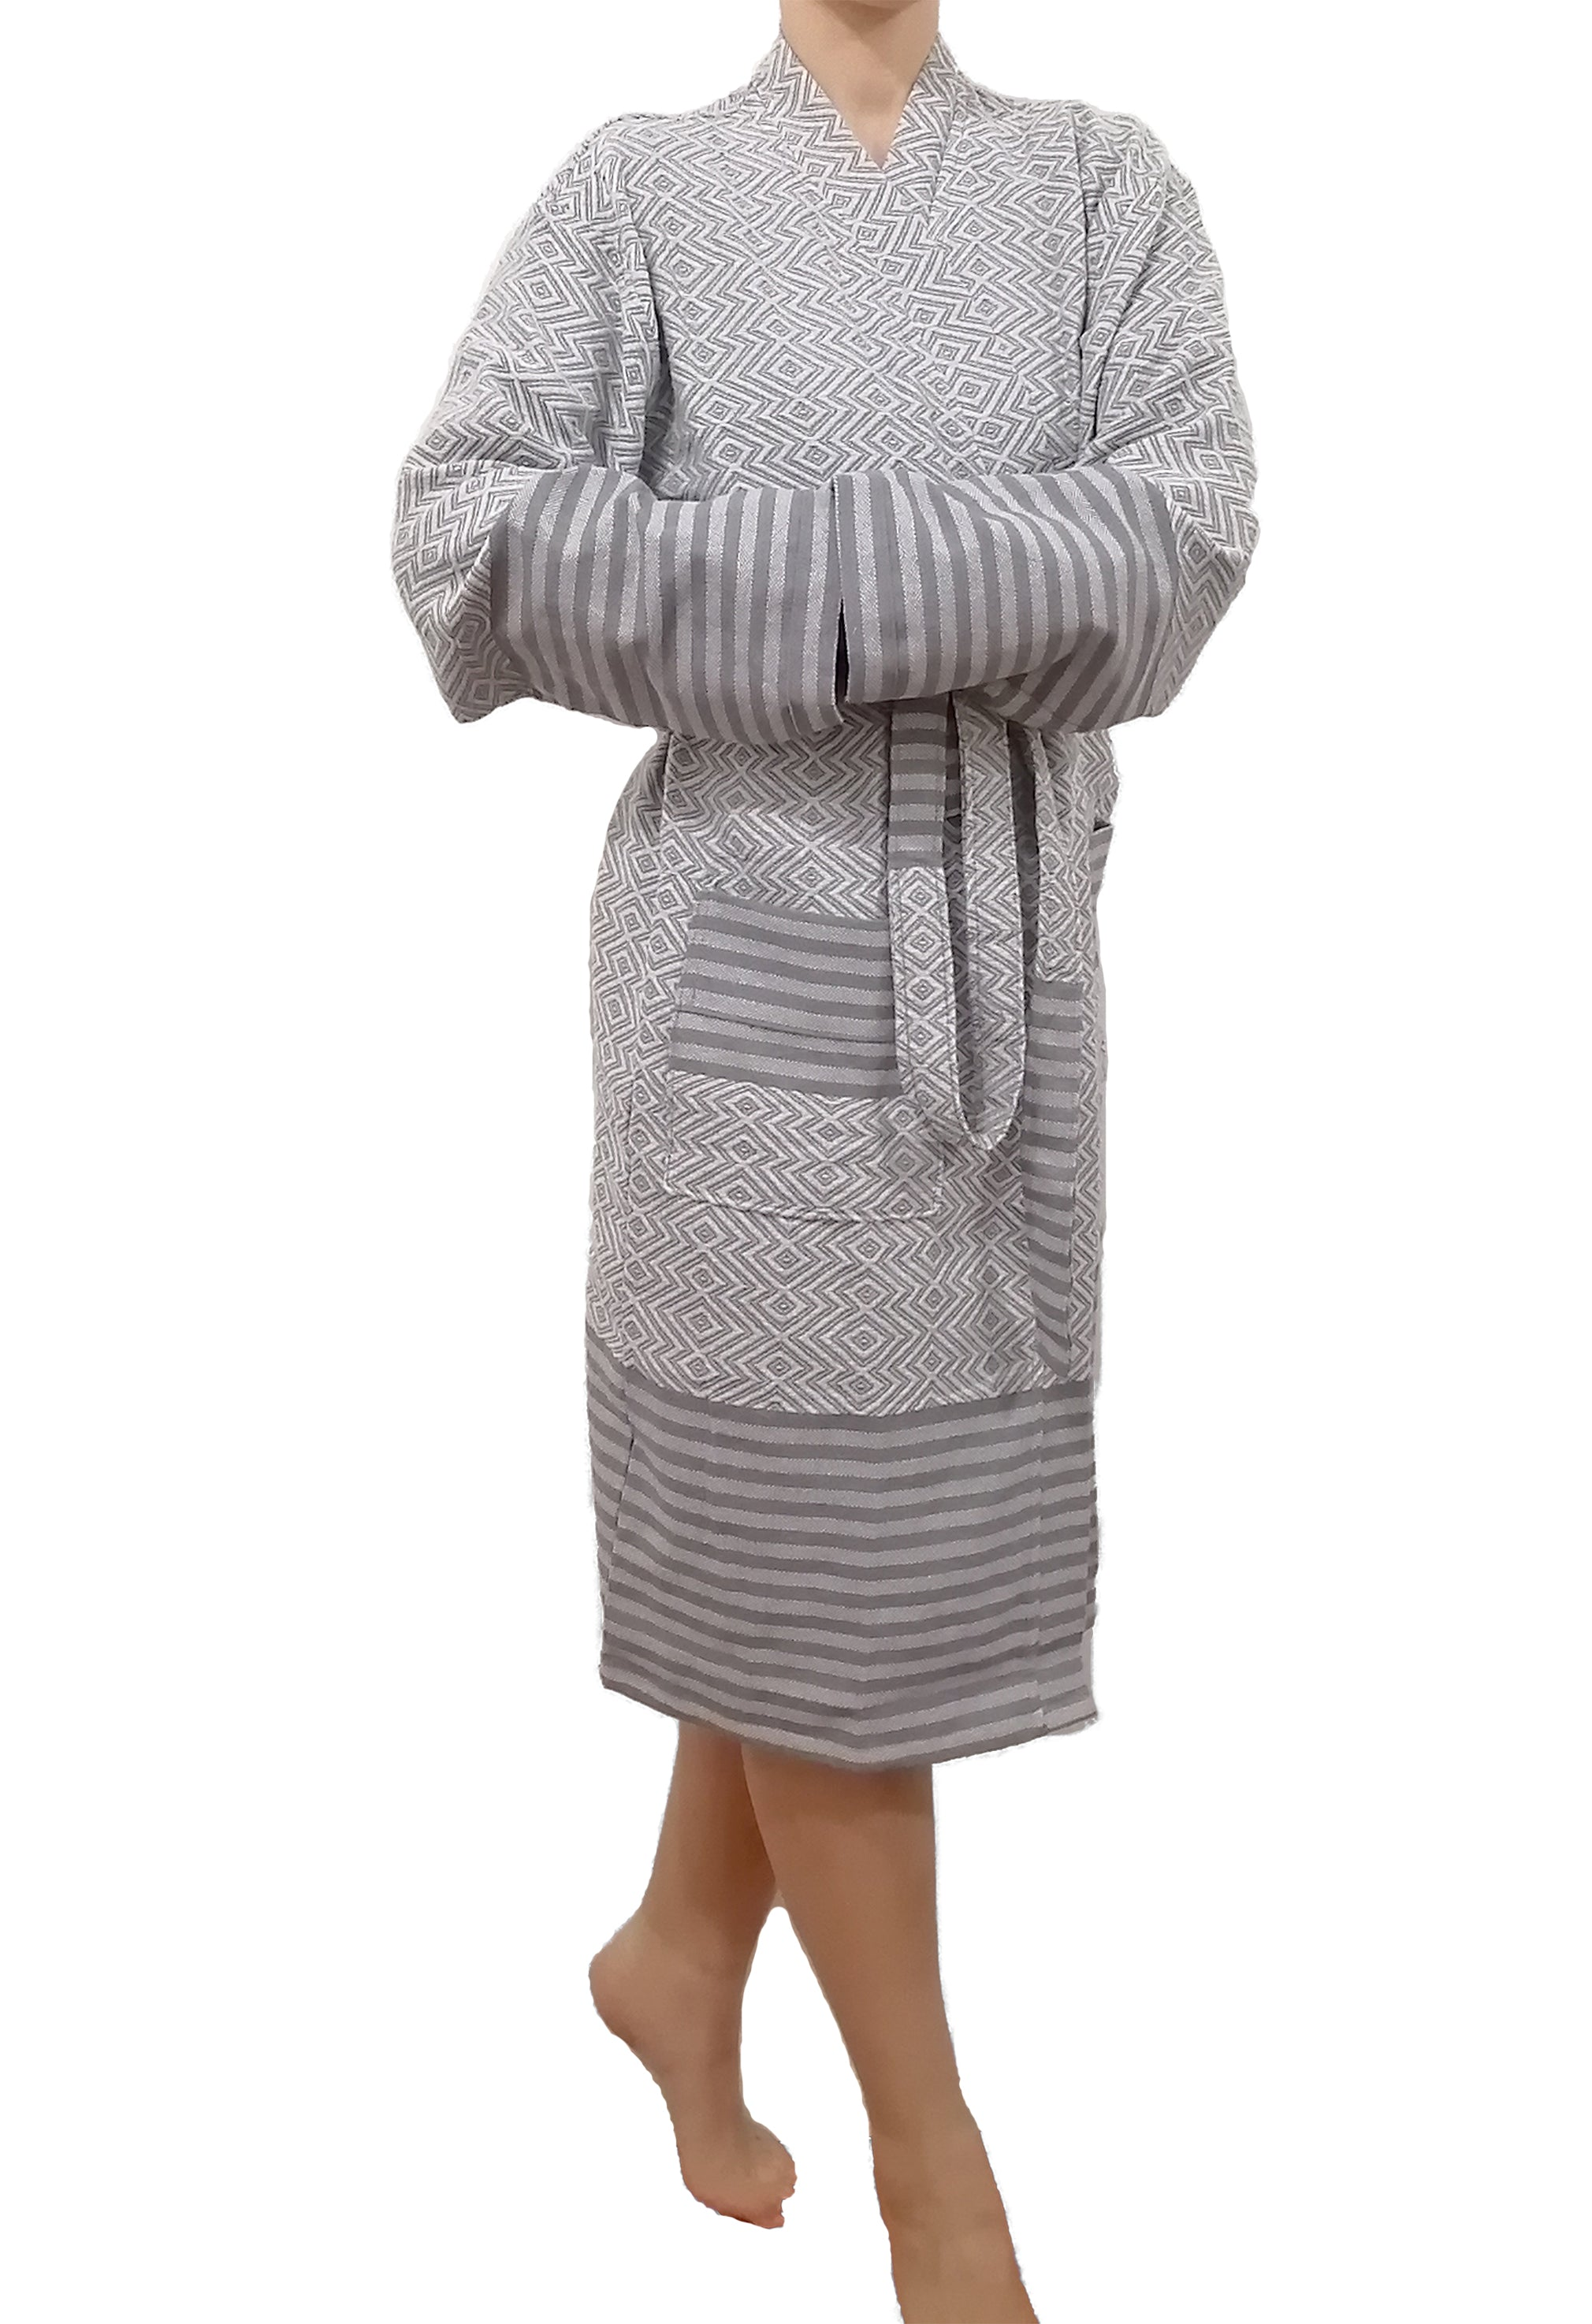 Turkish robe sultan silver made with the finest quality Turkish cotton, super soft, lightweight Turkish towel robes, Perfect for drying off and staying warm, superior absorbency.it is with arrow pattern.